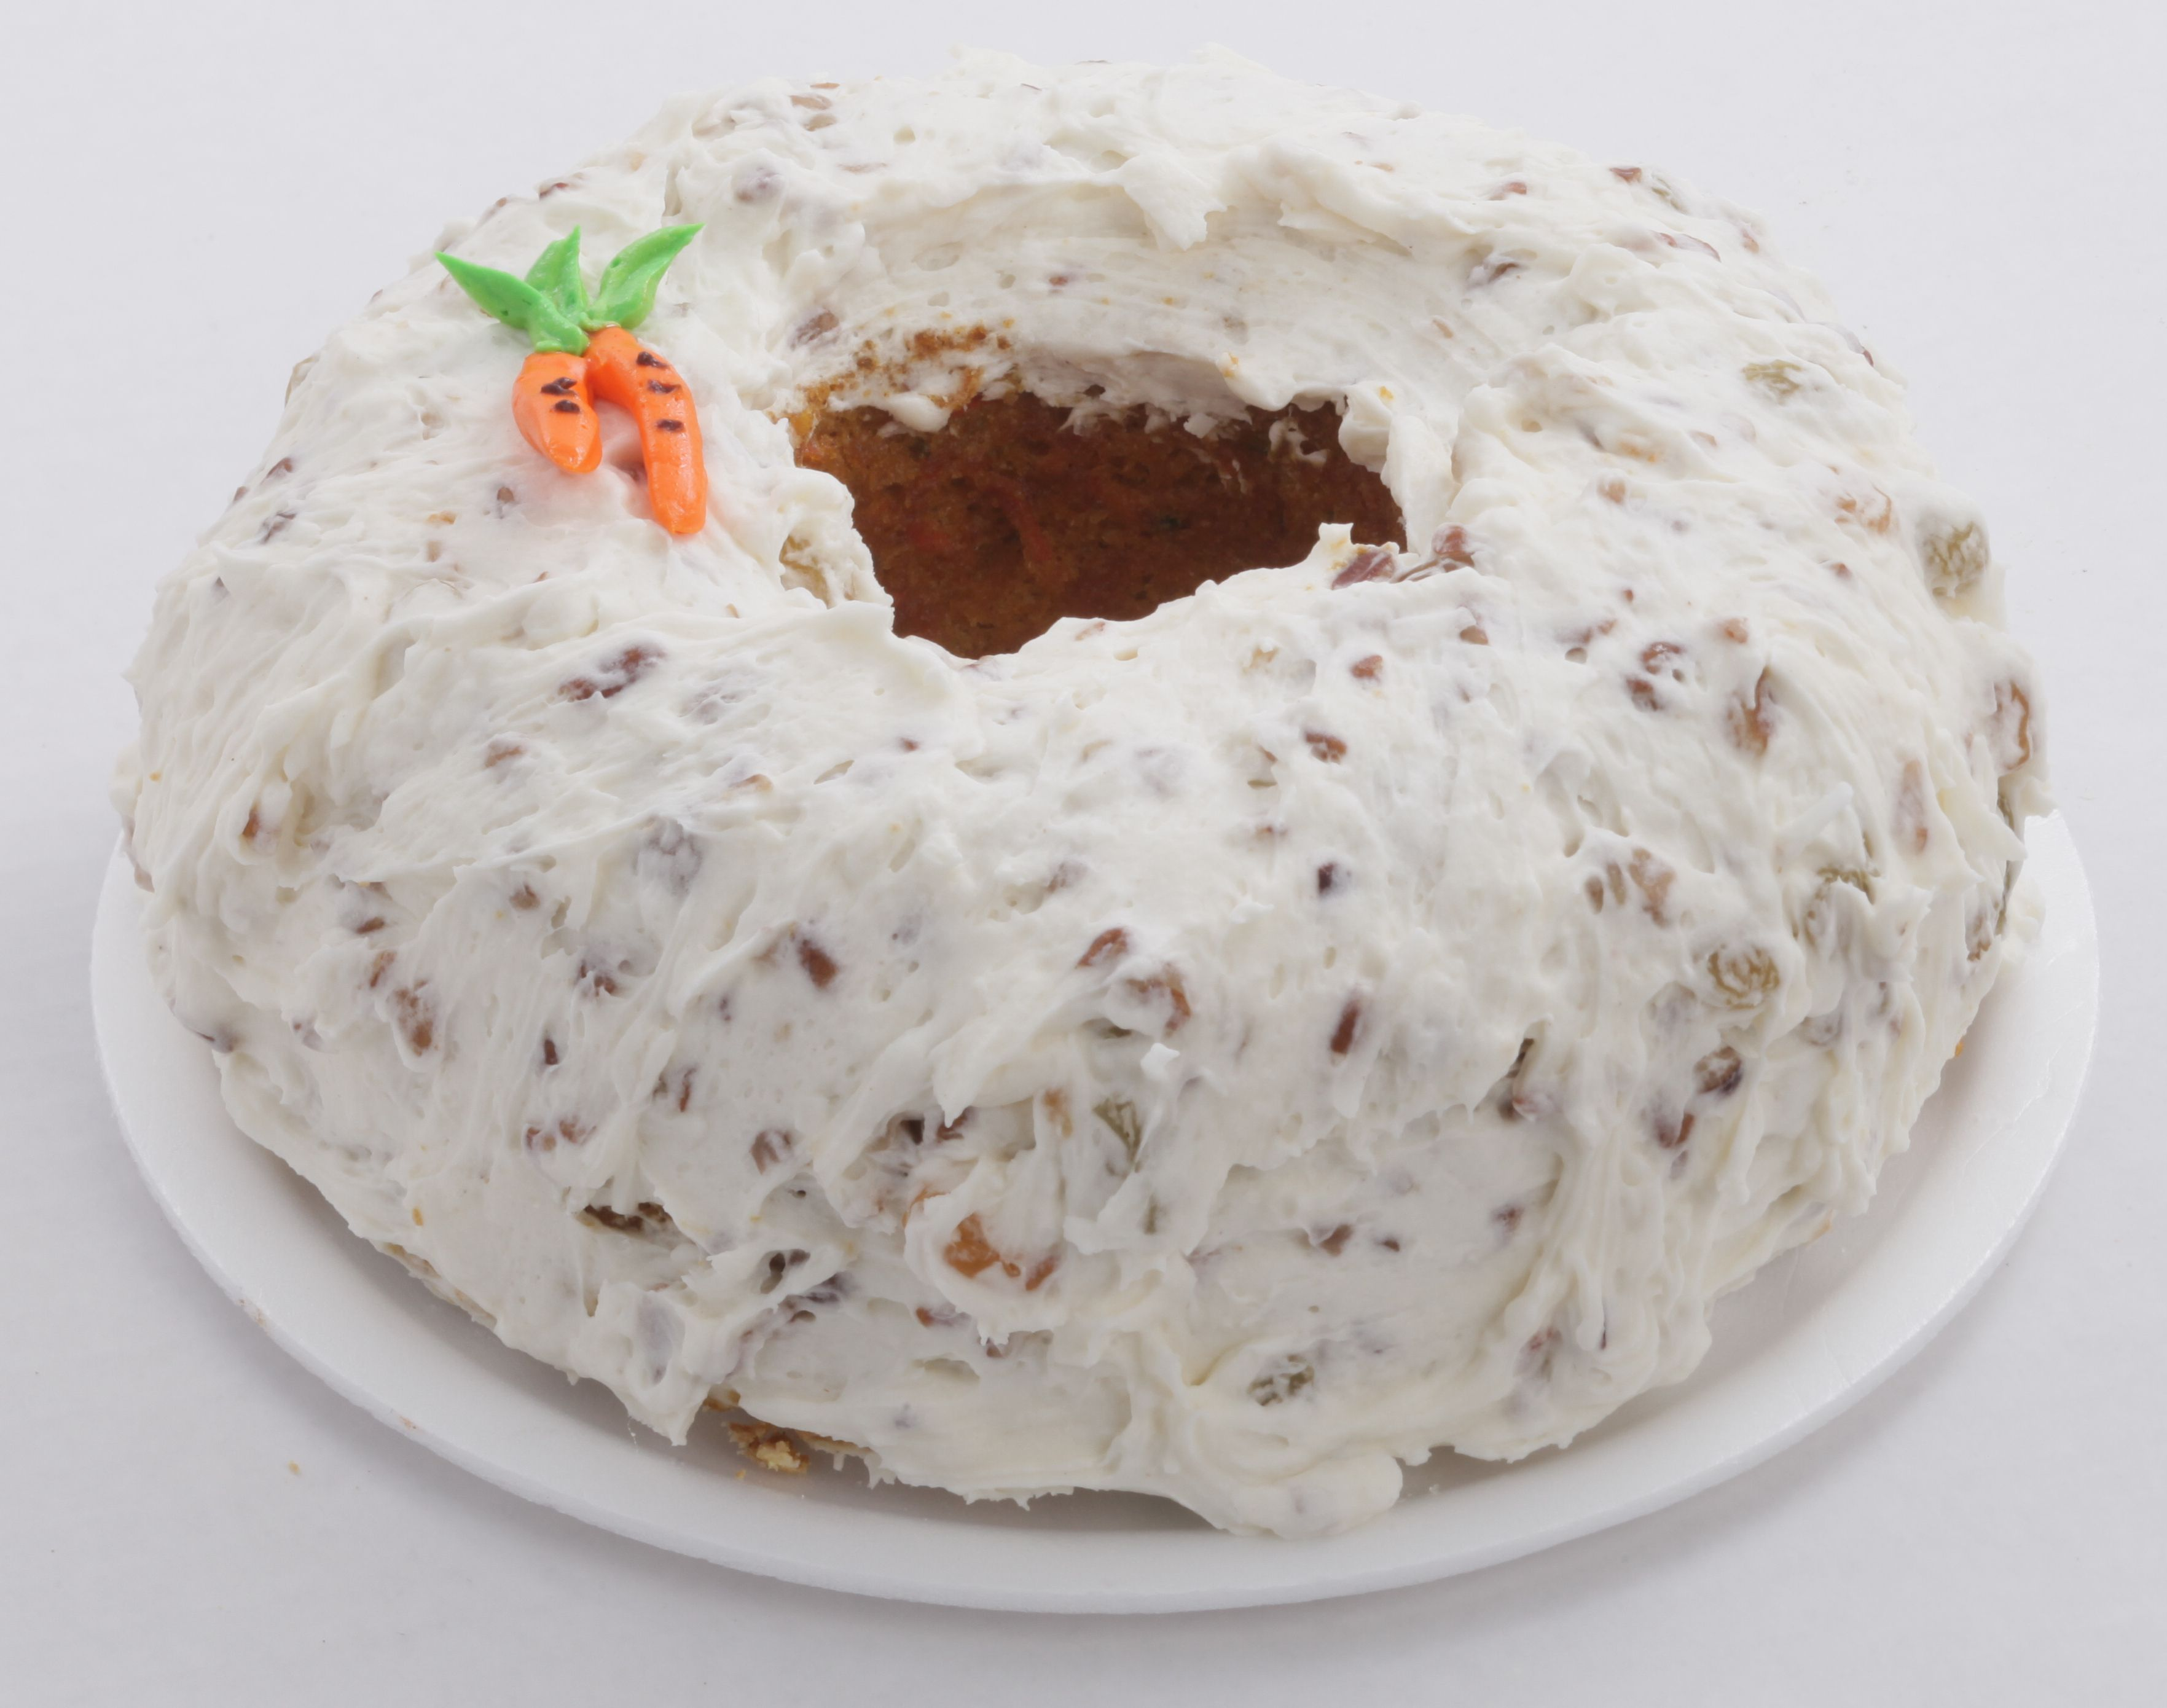 Carrot cake from apple annies bake shop in wilmington nc